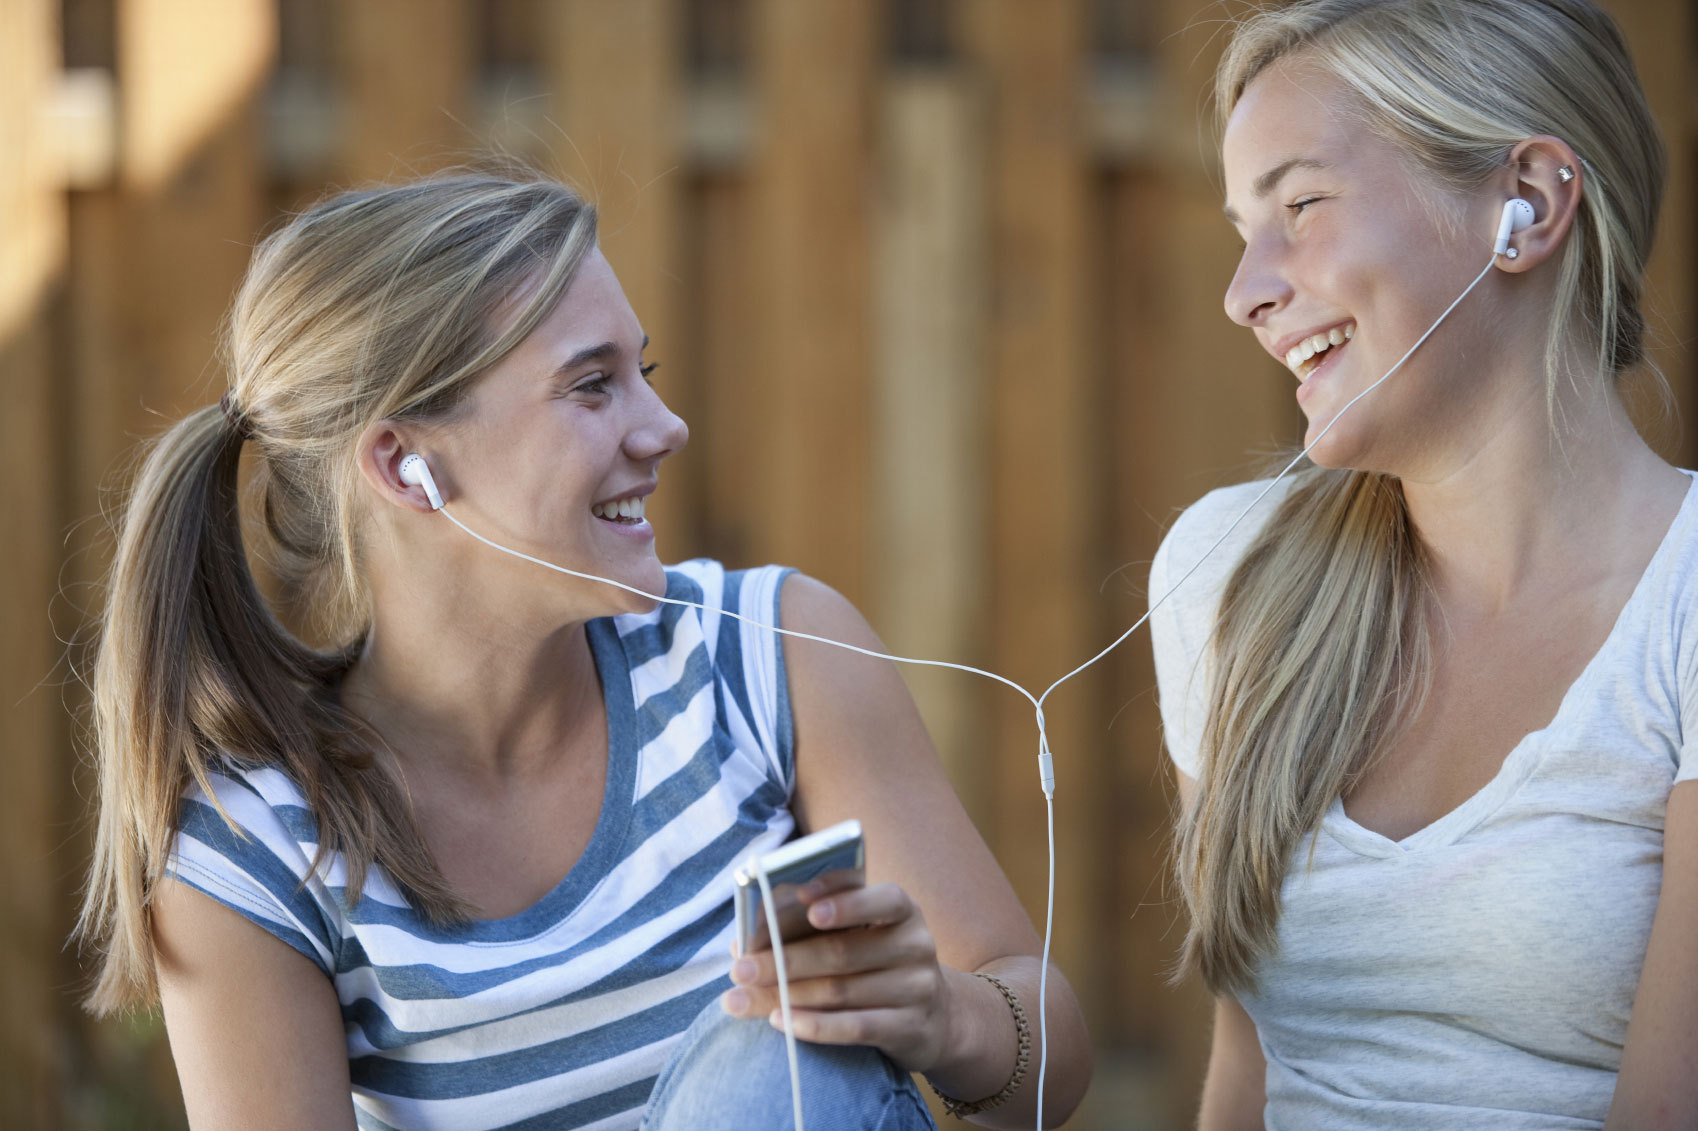 Portable listening devices aren't the only culprit for teen hearing loss. (Photo: Akron Children's Hospital)